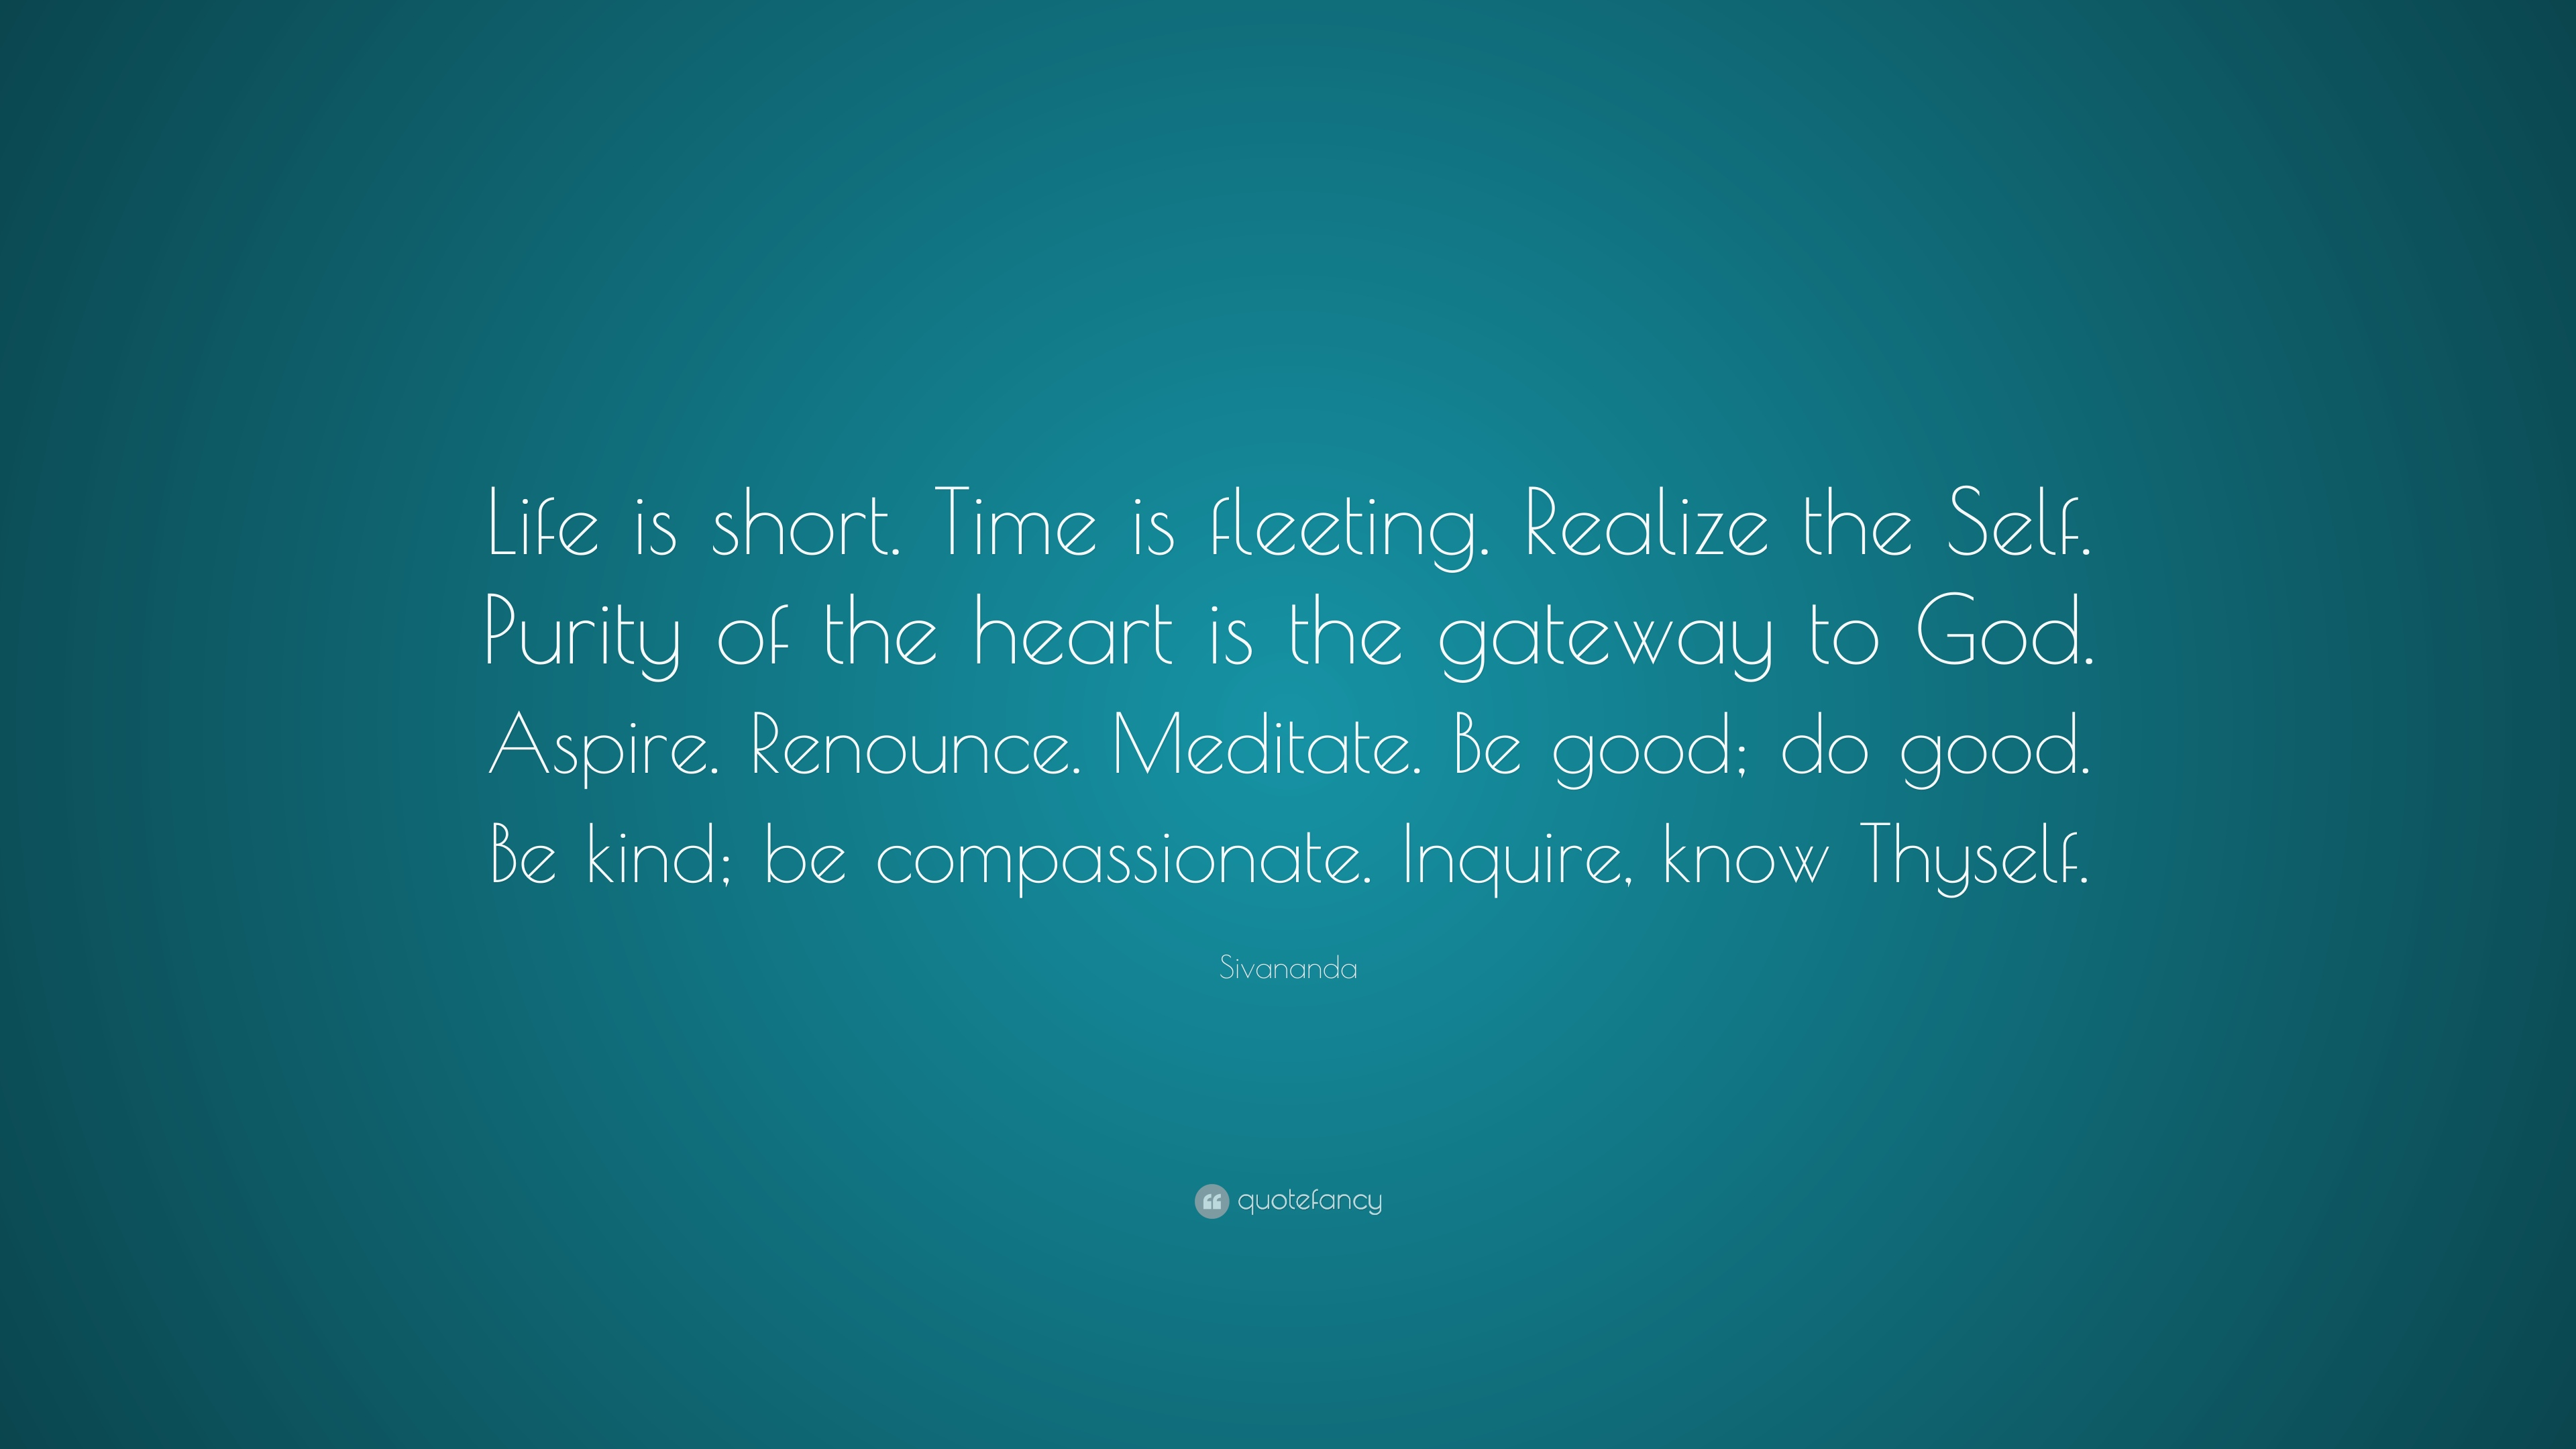 Sivananda Quote Life Is Short Time Is Fleeting Realize The Self